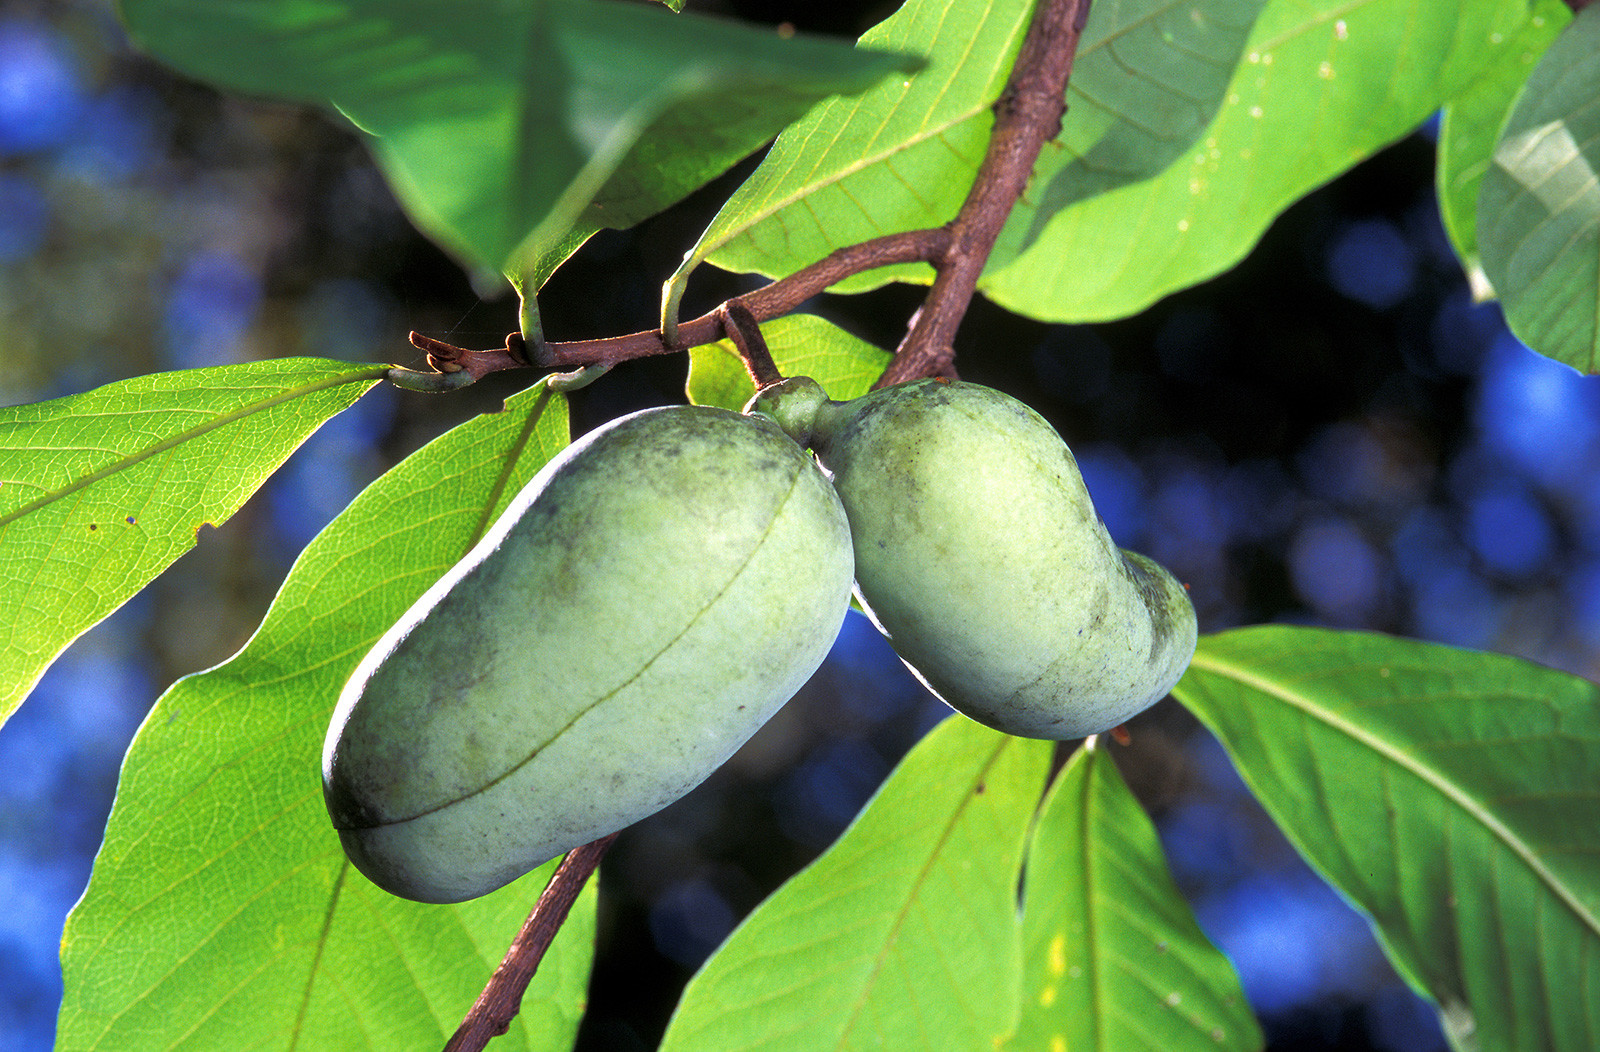 2 pawpaw fruits growing from a tree branch.